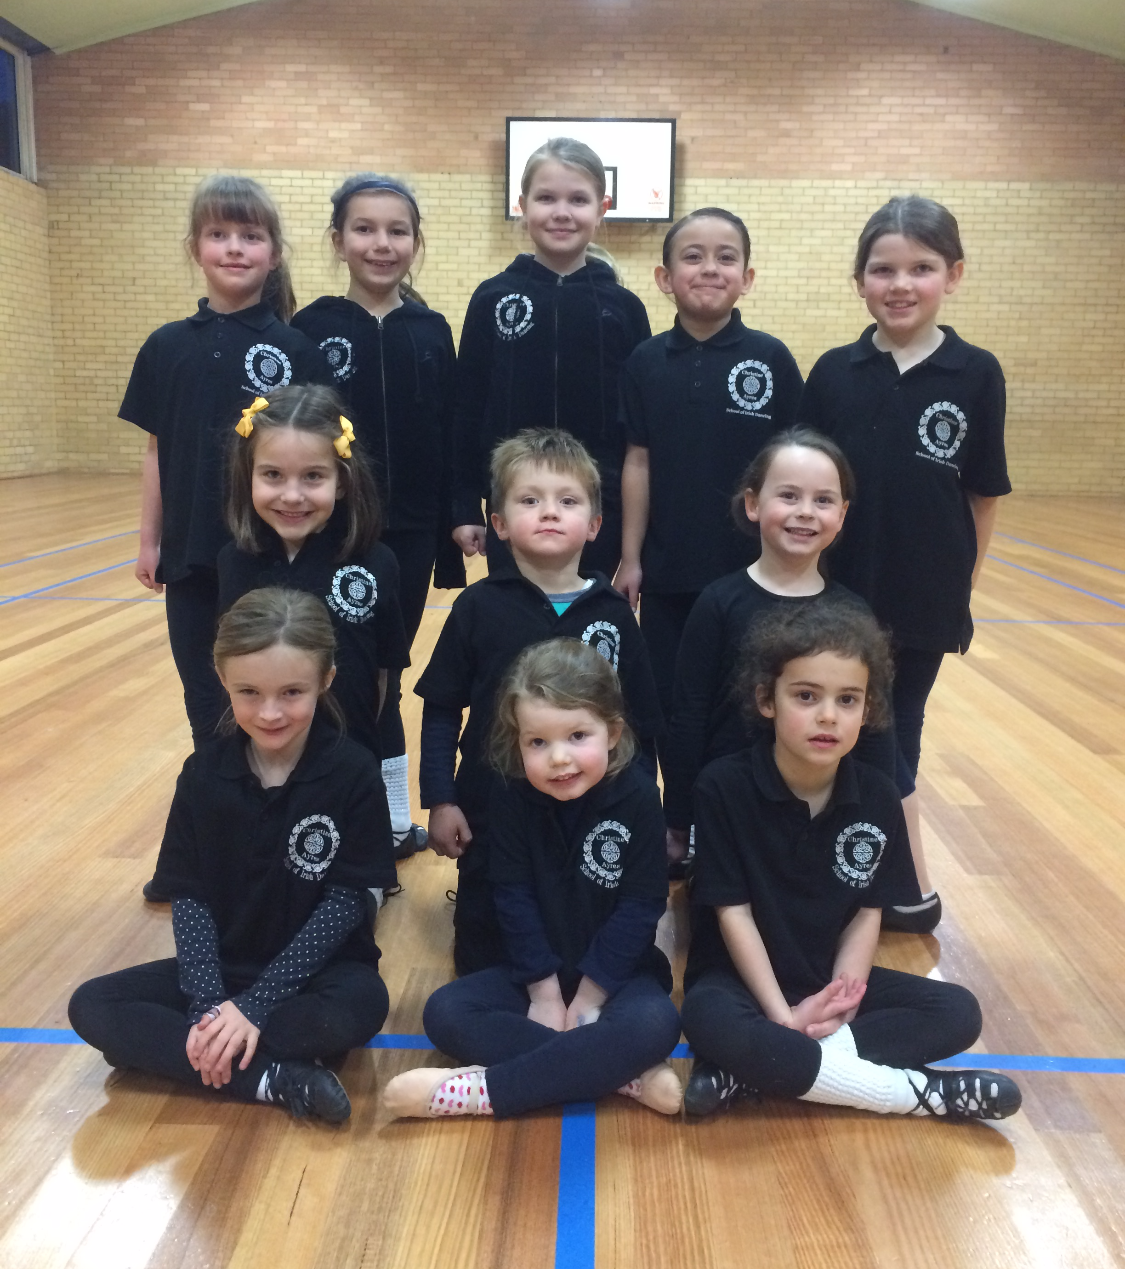 Some of our mini dancers ready for 2016!